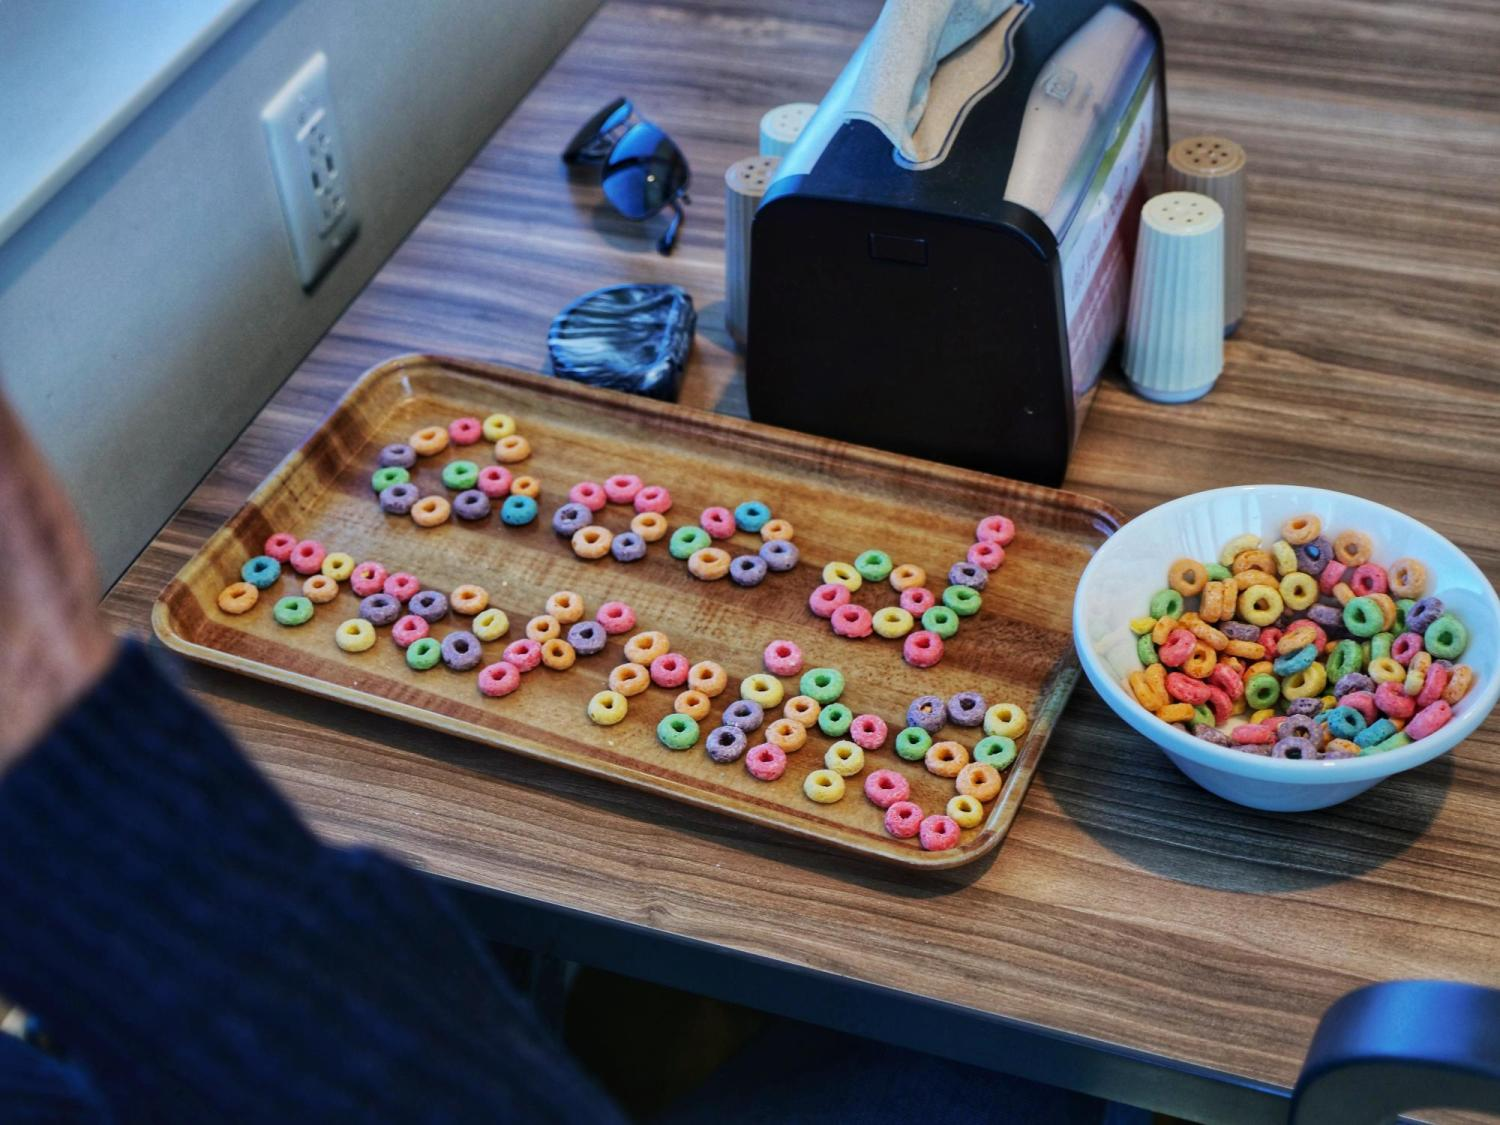 Good morning written in Froot Loops cereal at Village Center. Photo by Glenn Asakawa.